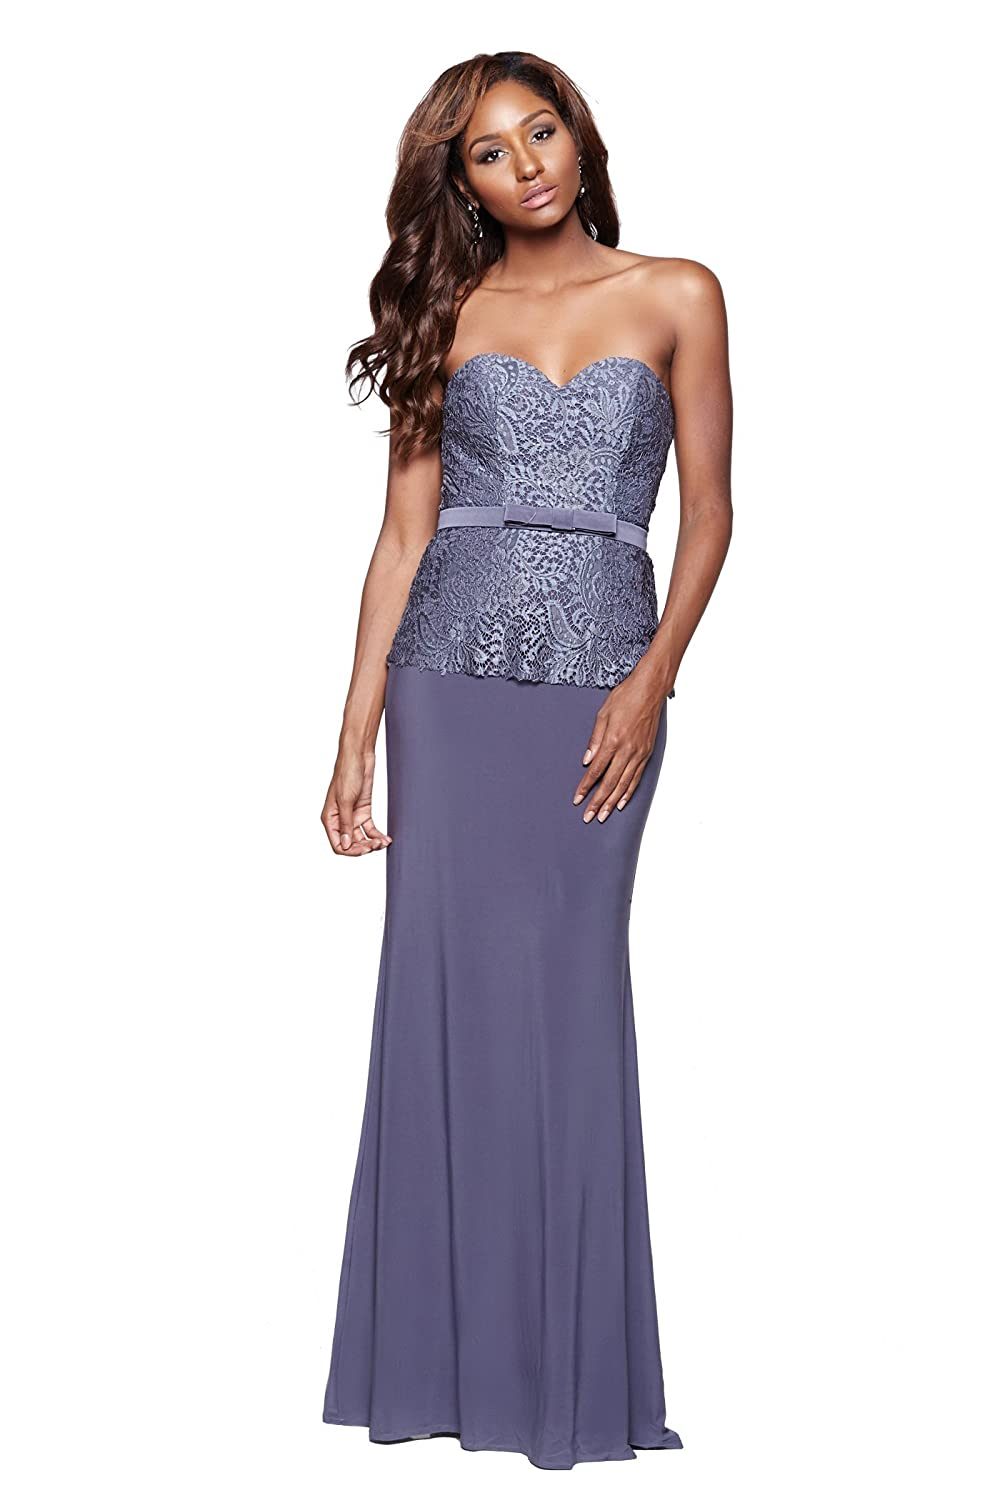 b8230a8724 Amazon.com  MILANO FORMALS Noomi - Strapless Sweetheart Long Women Formal  Dress With Bow